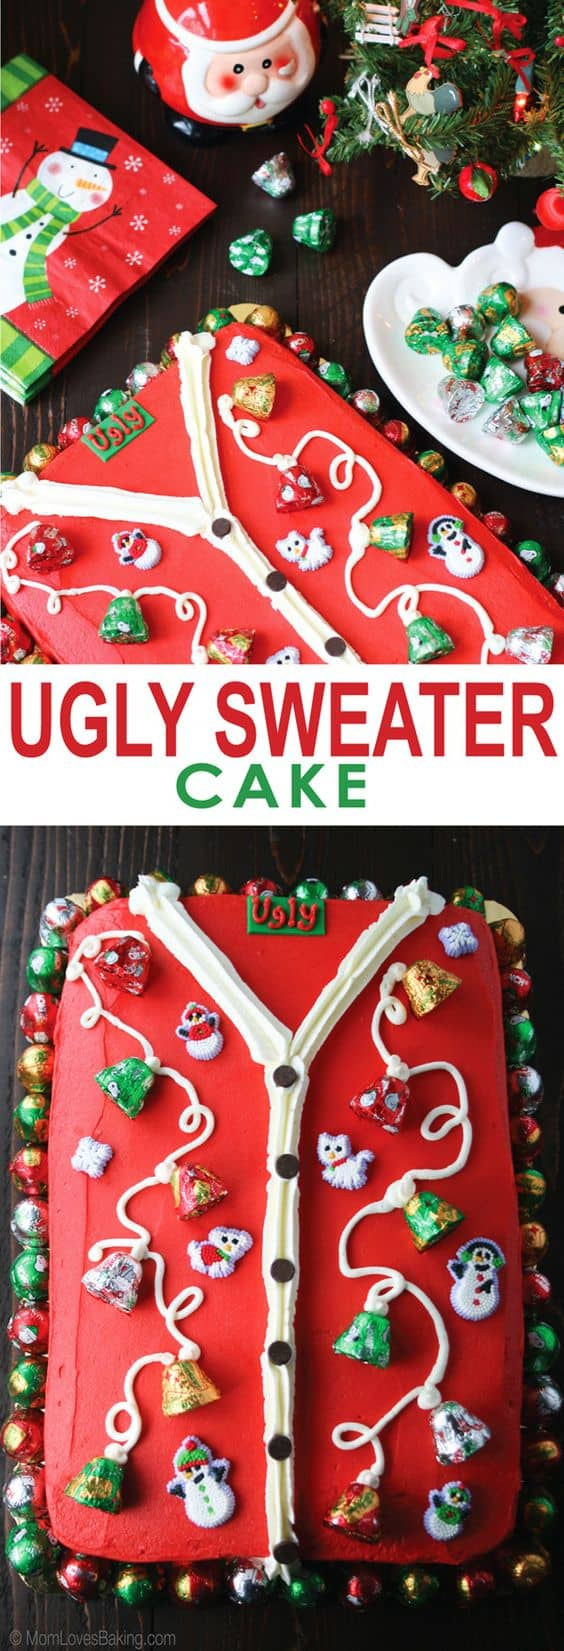 Ugly Sweater Cake - Best Christmas Desserts - Recipes and Christmas Treats to Try this Year! Try these amazing and cute easy Christmas dessert recipes to have a great party for your kids, friends, and family! Cupcakes, cakes, sweet bites, pies, brownies, home-made Christmas popcorn, Christmas cookies and other delights. #christmas #dessertfoodrecipes #xmas #recipes #food #christmasfood